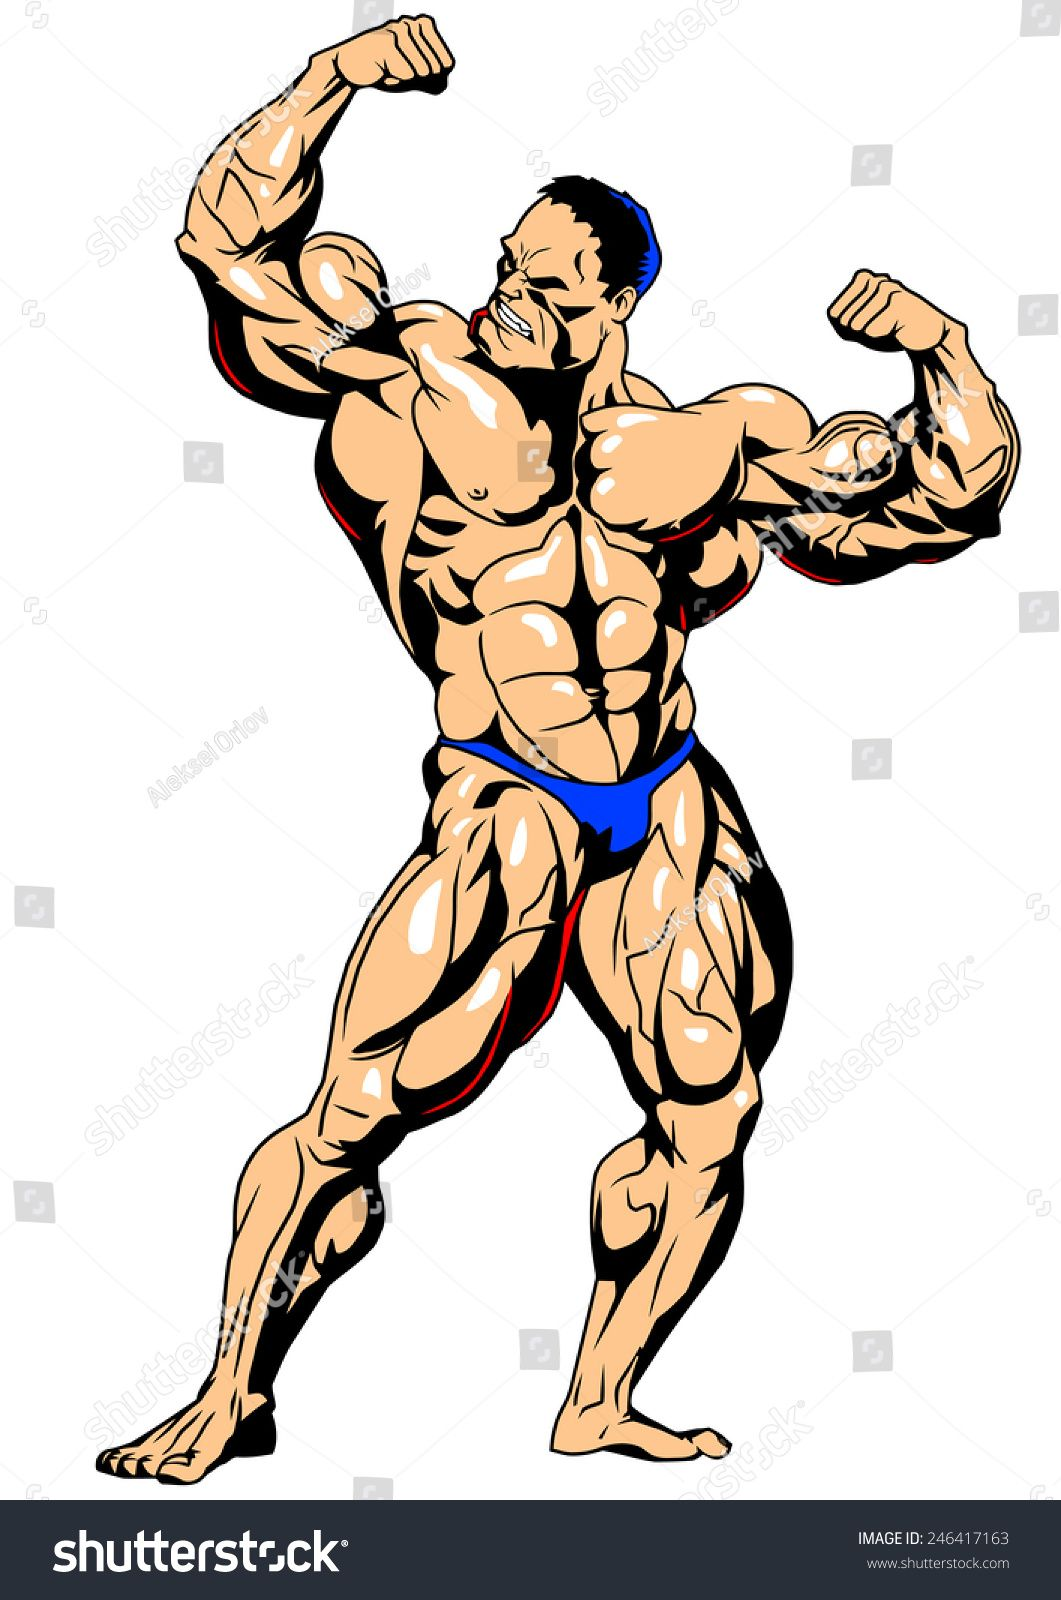 png free Muscular bodybuilder shows a. Bicep drawing bodybuilding